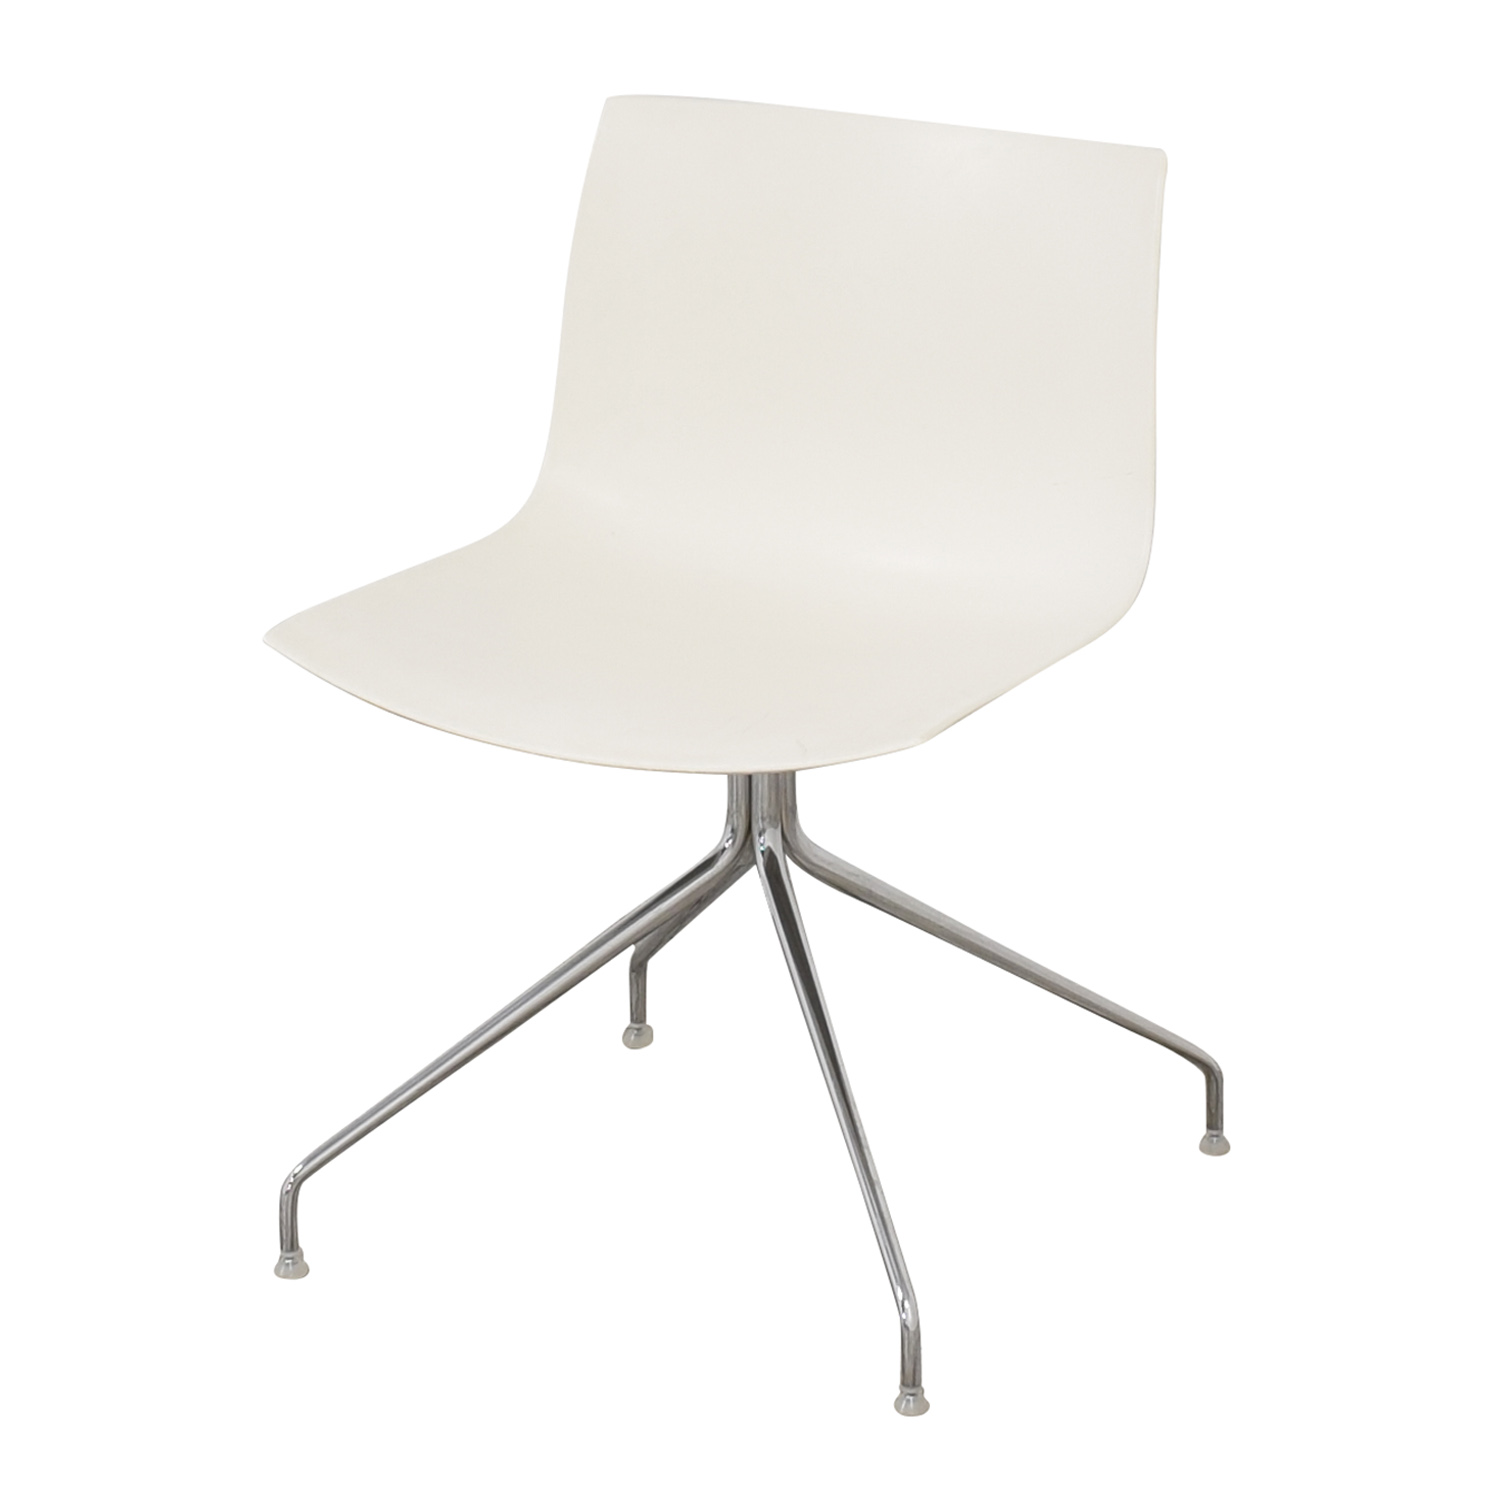 Arper Arper Catifa 46 Trestle Swivel Chair price